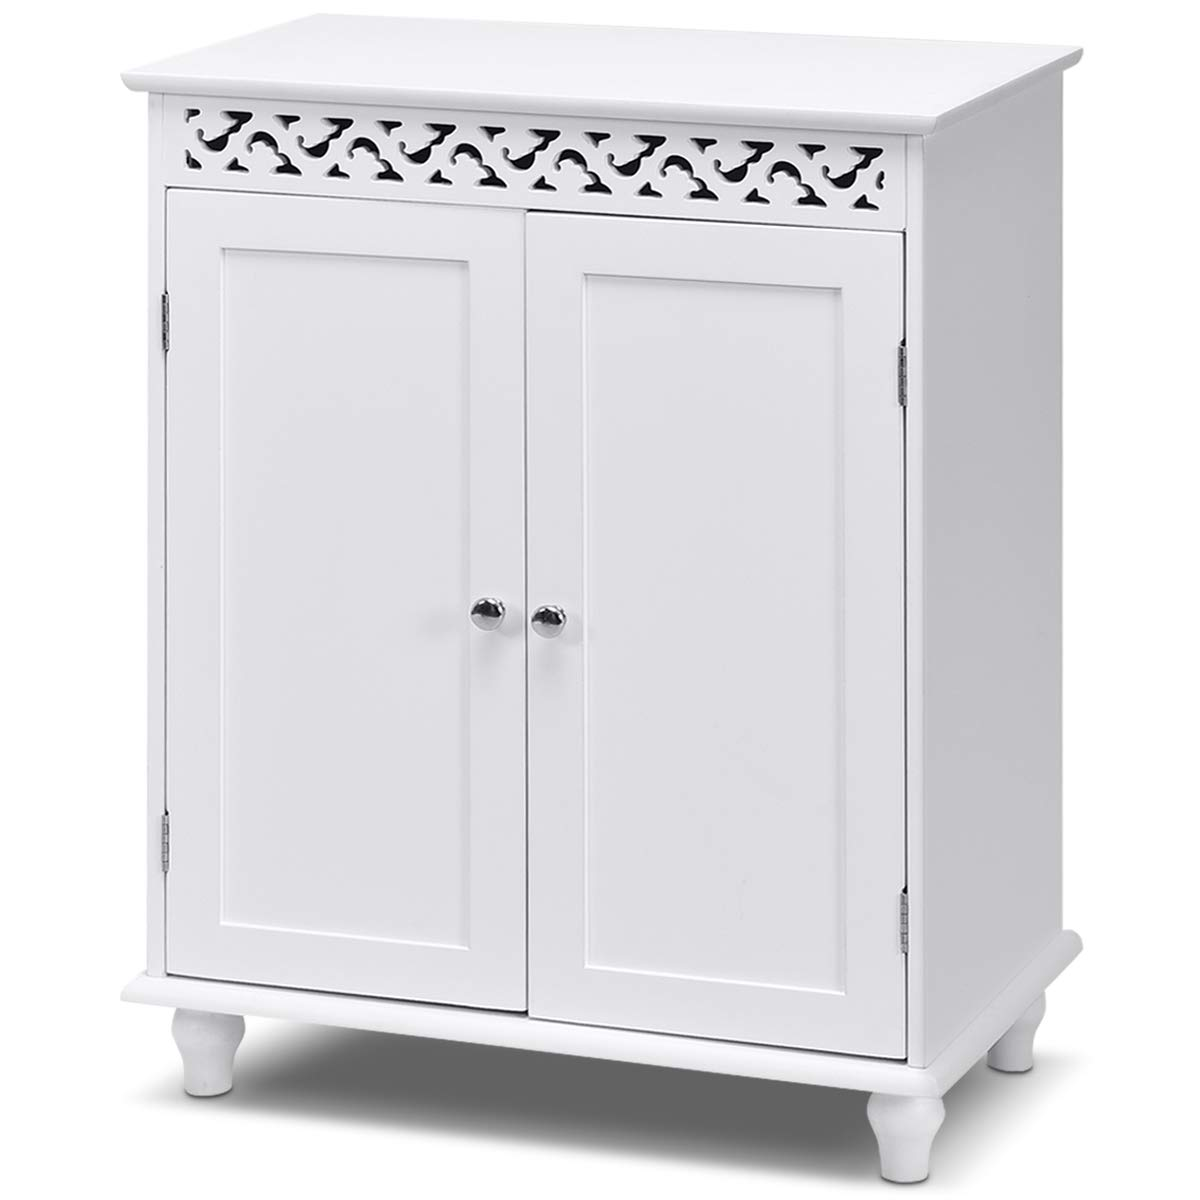 Tangkula Floor Cabinet Bathroom Storage Cabinet Wooden Modern Home Living Room Free Standing Storage Cabinet Furniture Side Organizer(White)